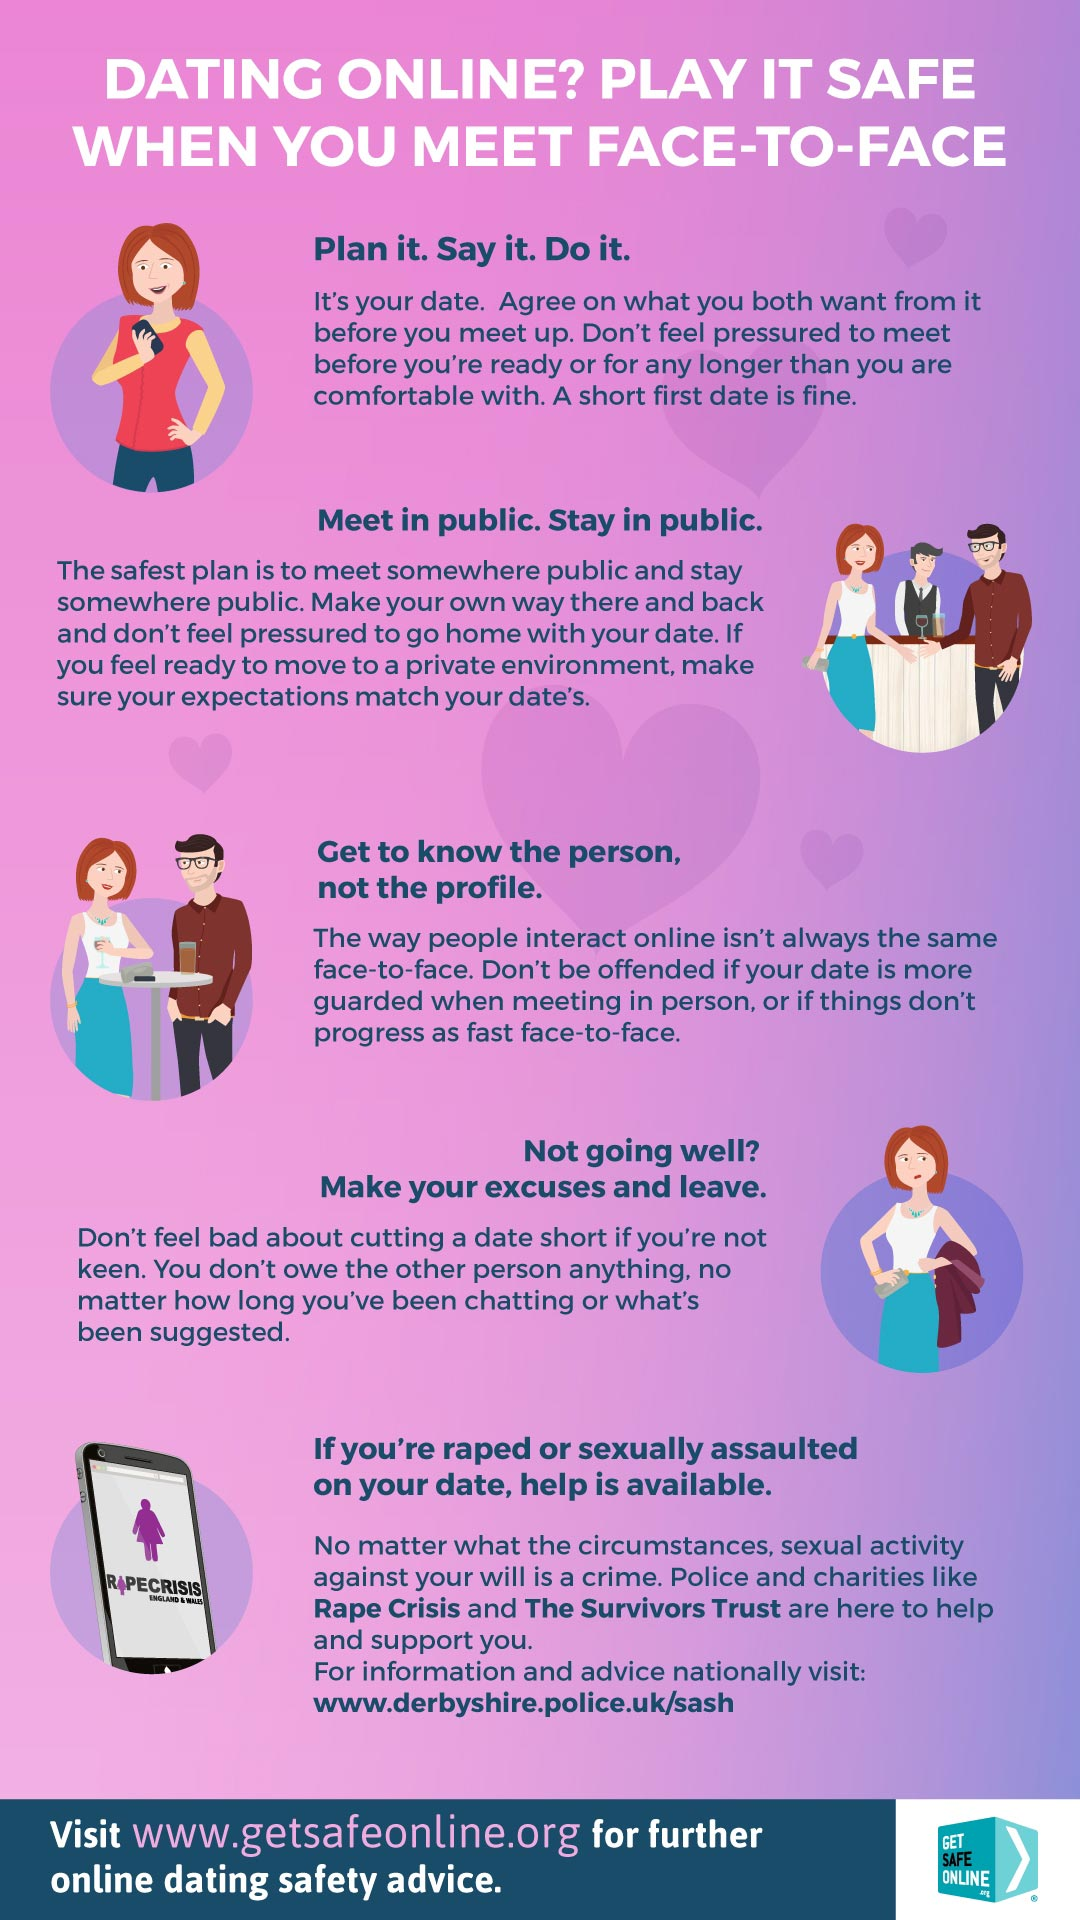 10 Safety Tips for Online Dating